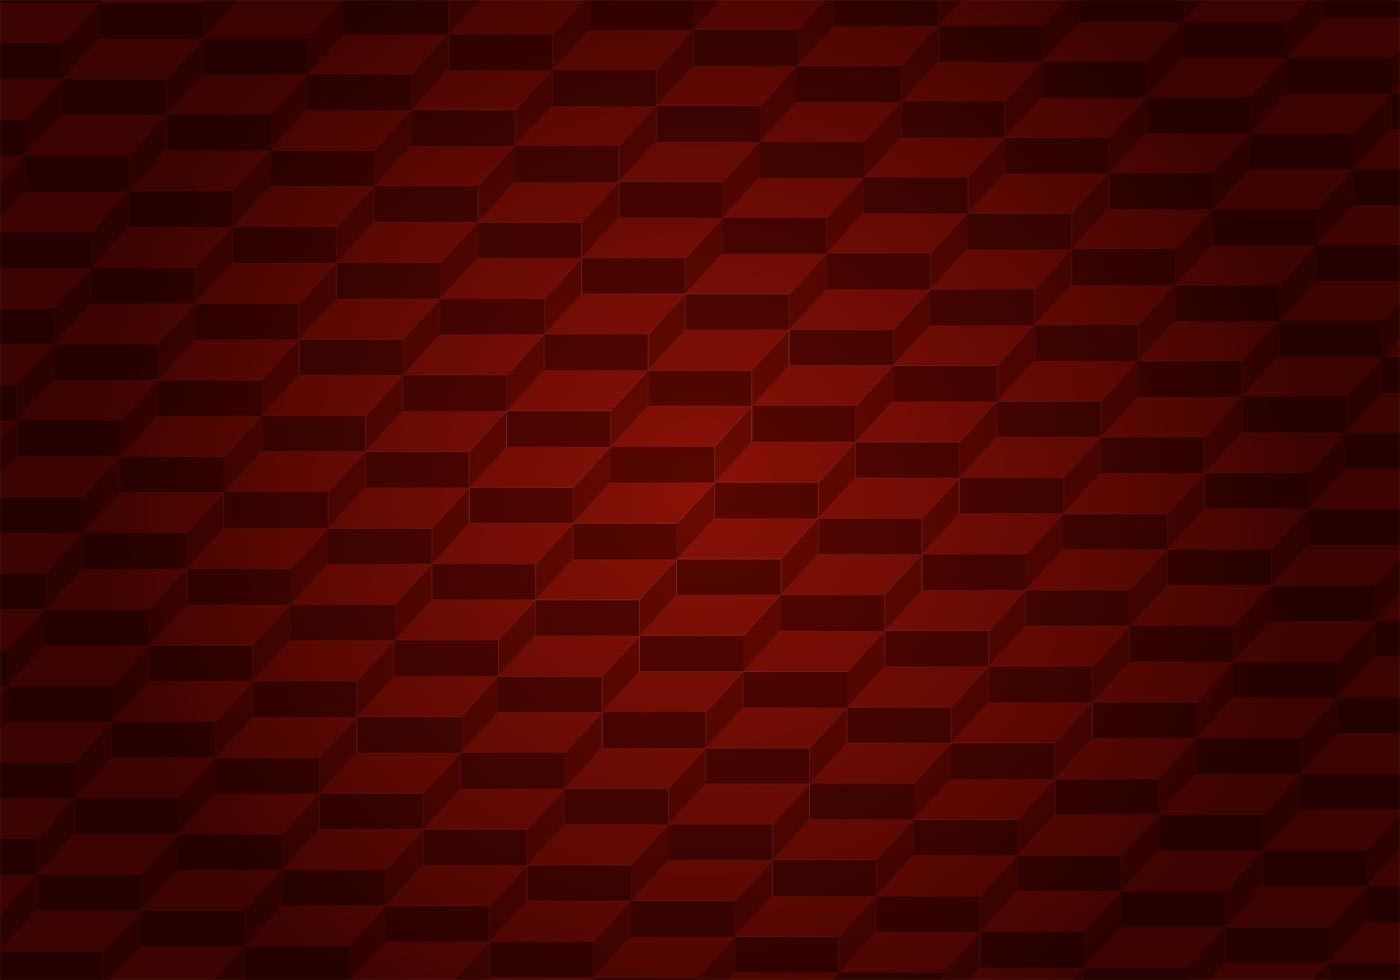 red maroon line background - photo #23